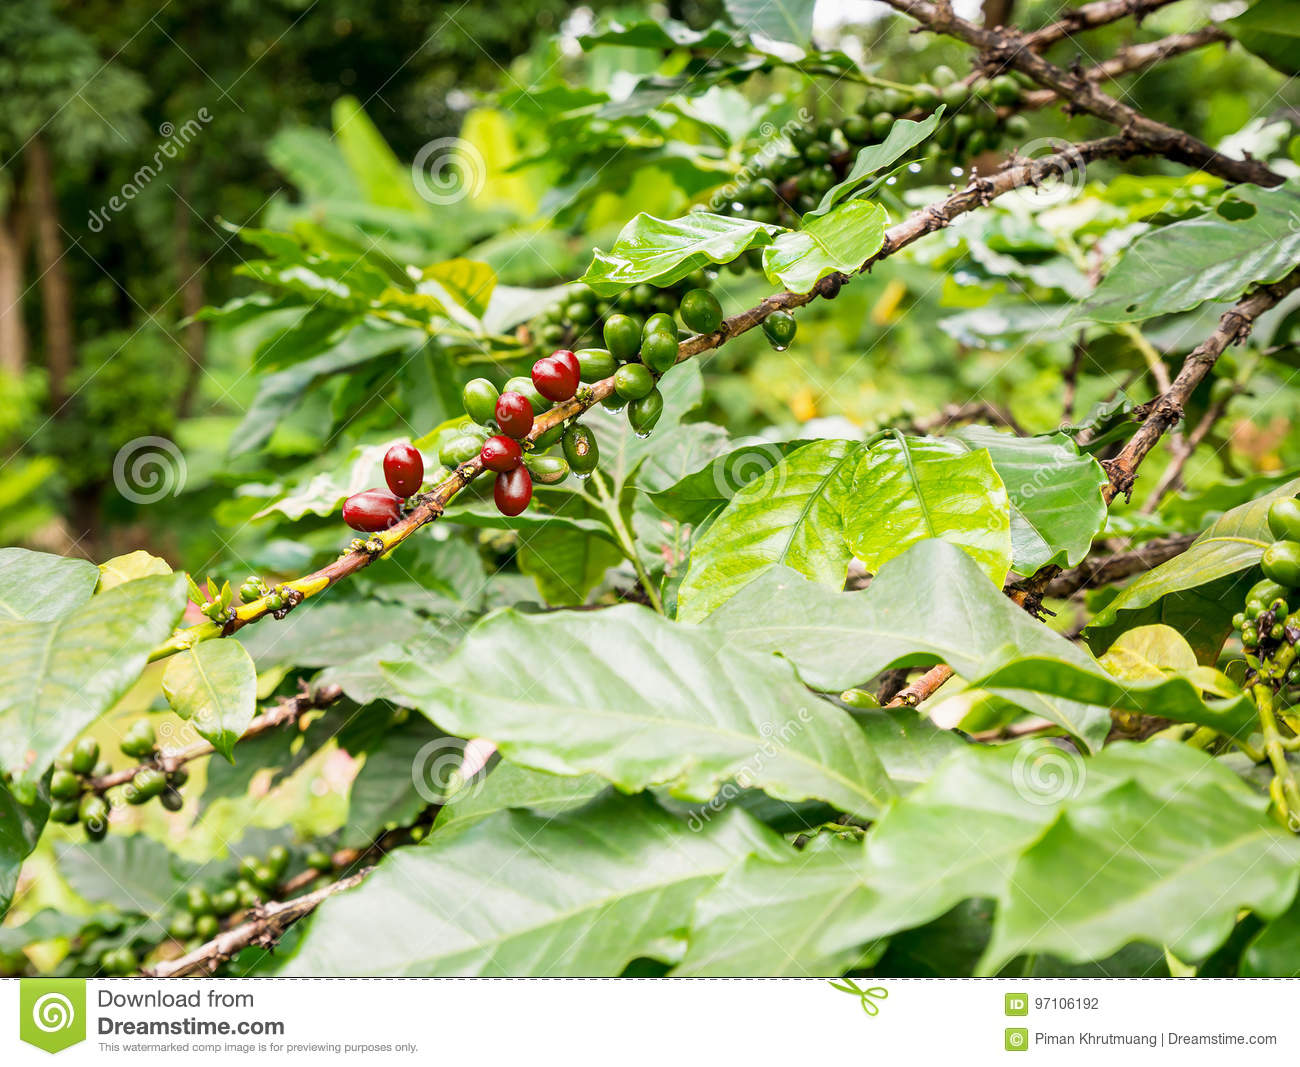 les grains de café en café plante l'arbre photo stock - image du